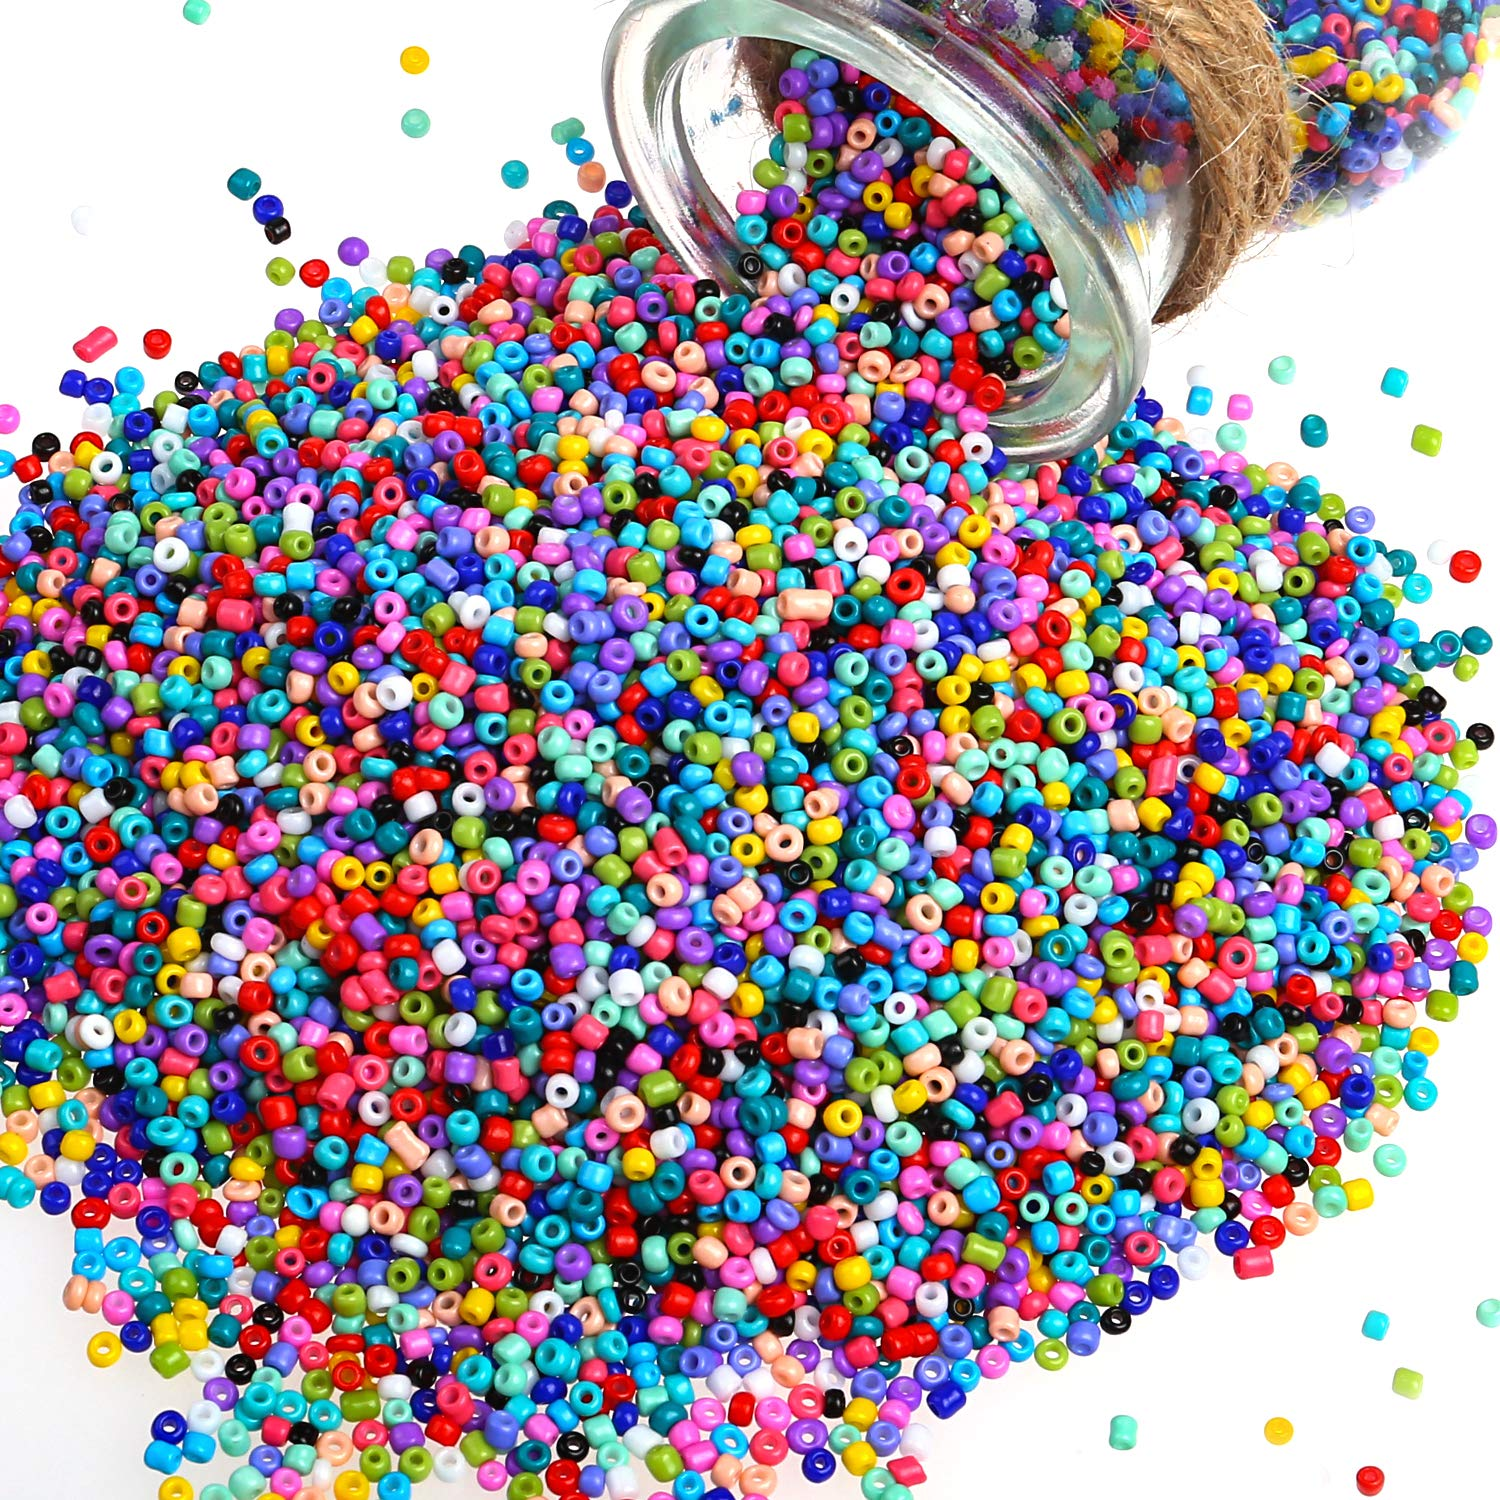 Phogary 1800pcs Glass Seed Beads Hole 1.3mm for Jewelry Making Mixed Colors Small Pony Beads Assorted Kit Opaque Colors Lustered Loose Spacer Beads 5mm Round 15 Colors DIY Crafting